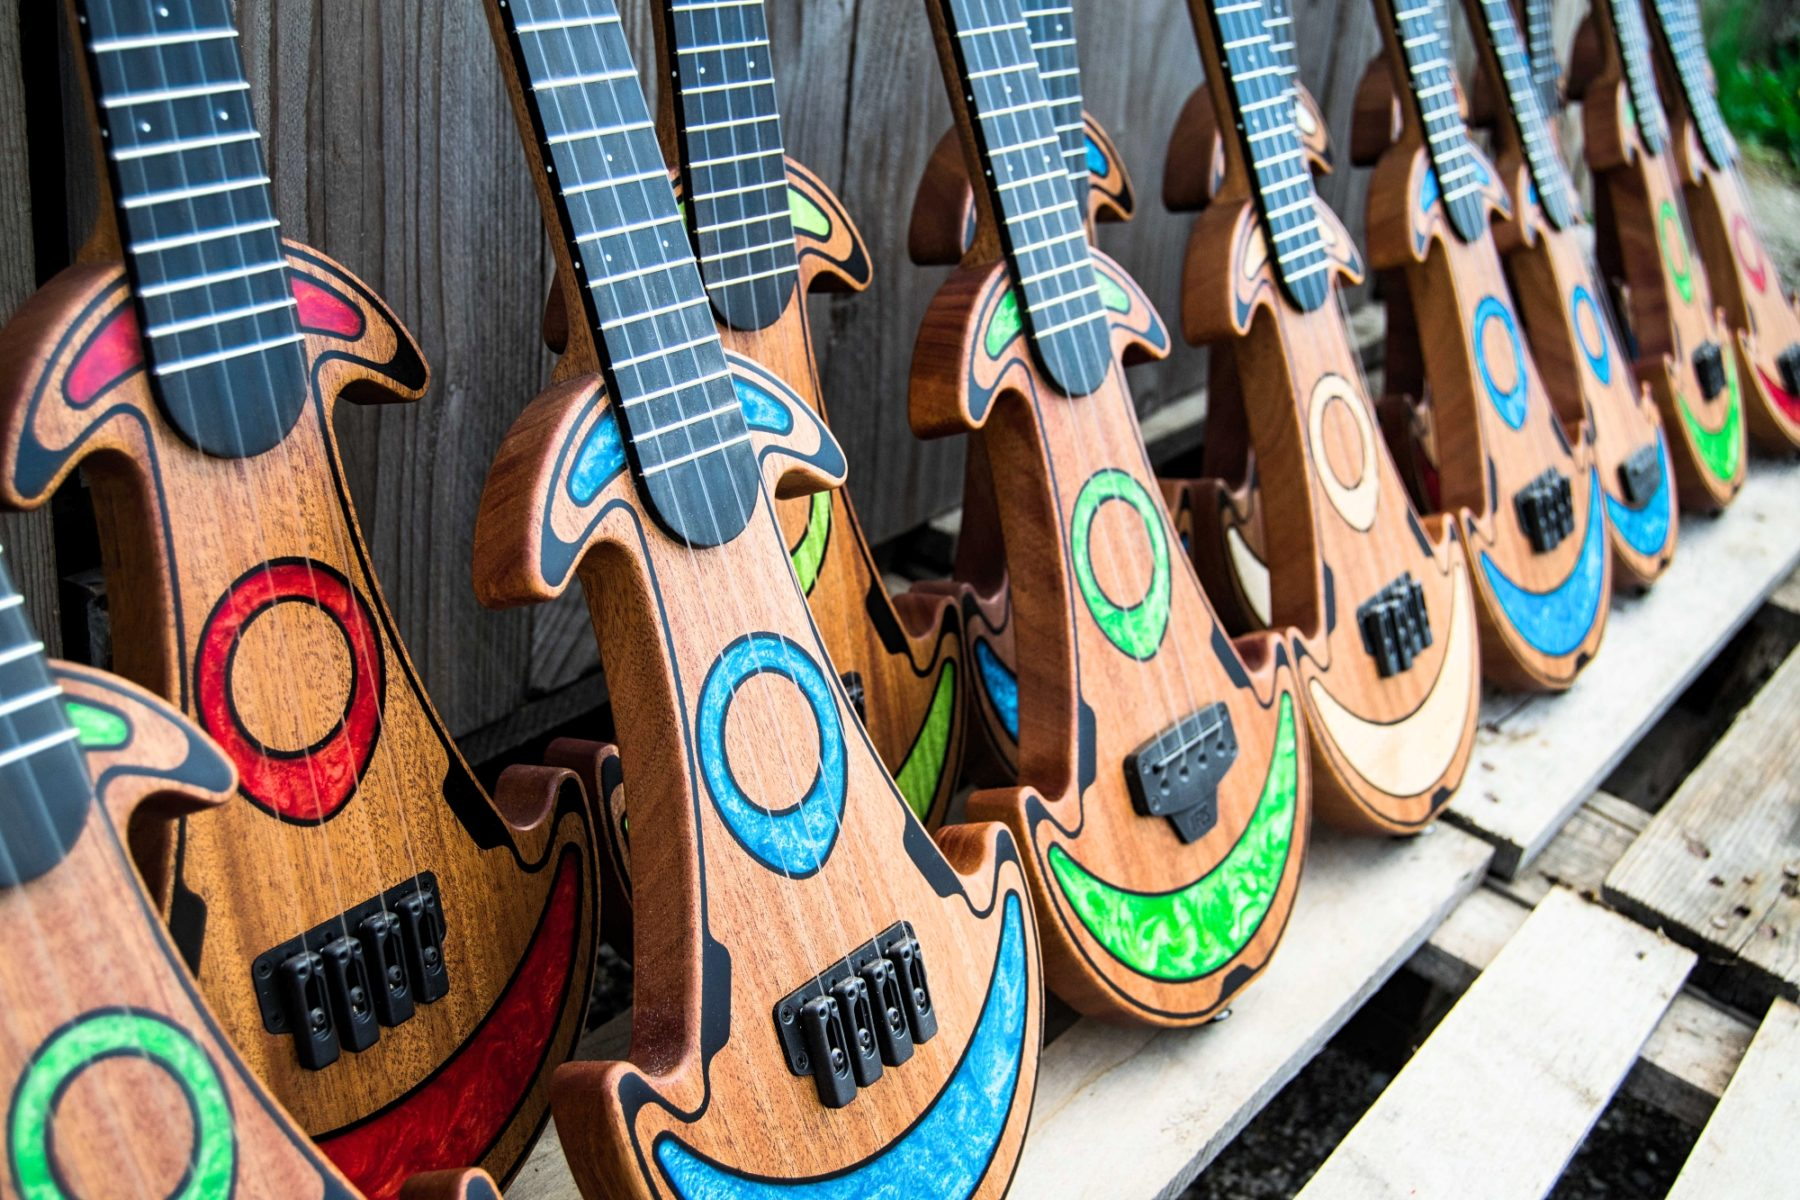 UFOS Ukuleles From Outer Space